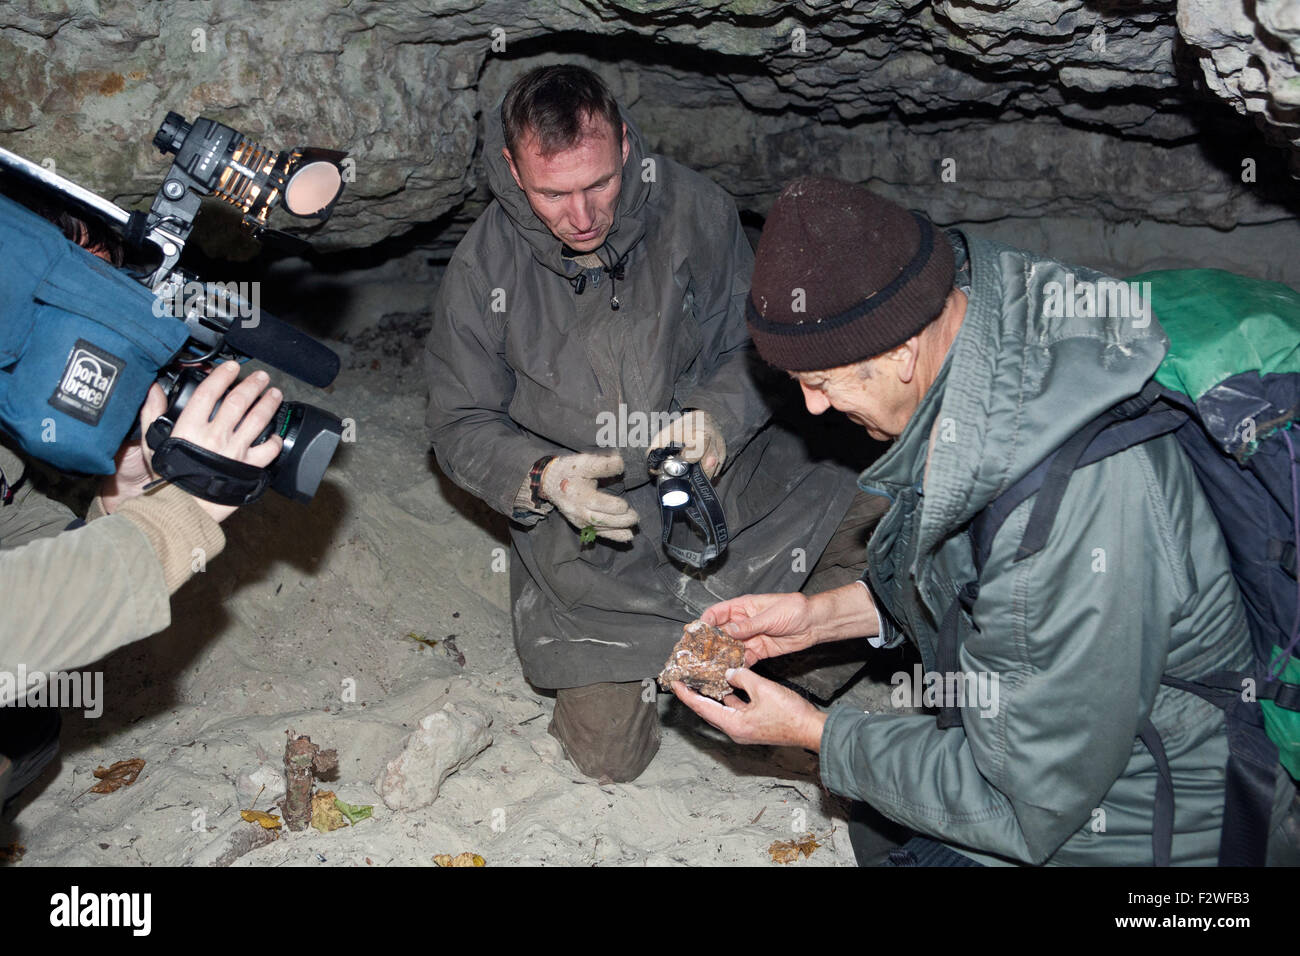 Sandstone cave explorers filmed in Abava river basin Kurzeme Latvia - Stock Image